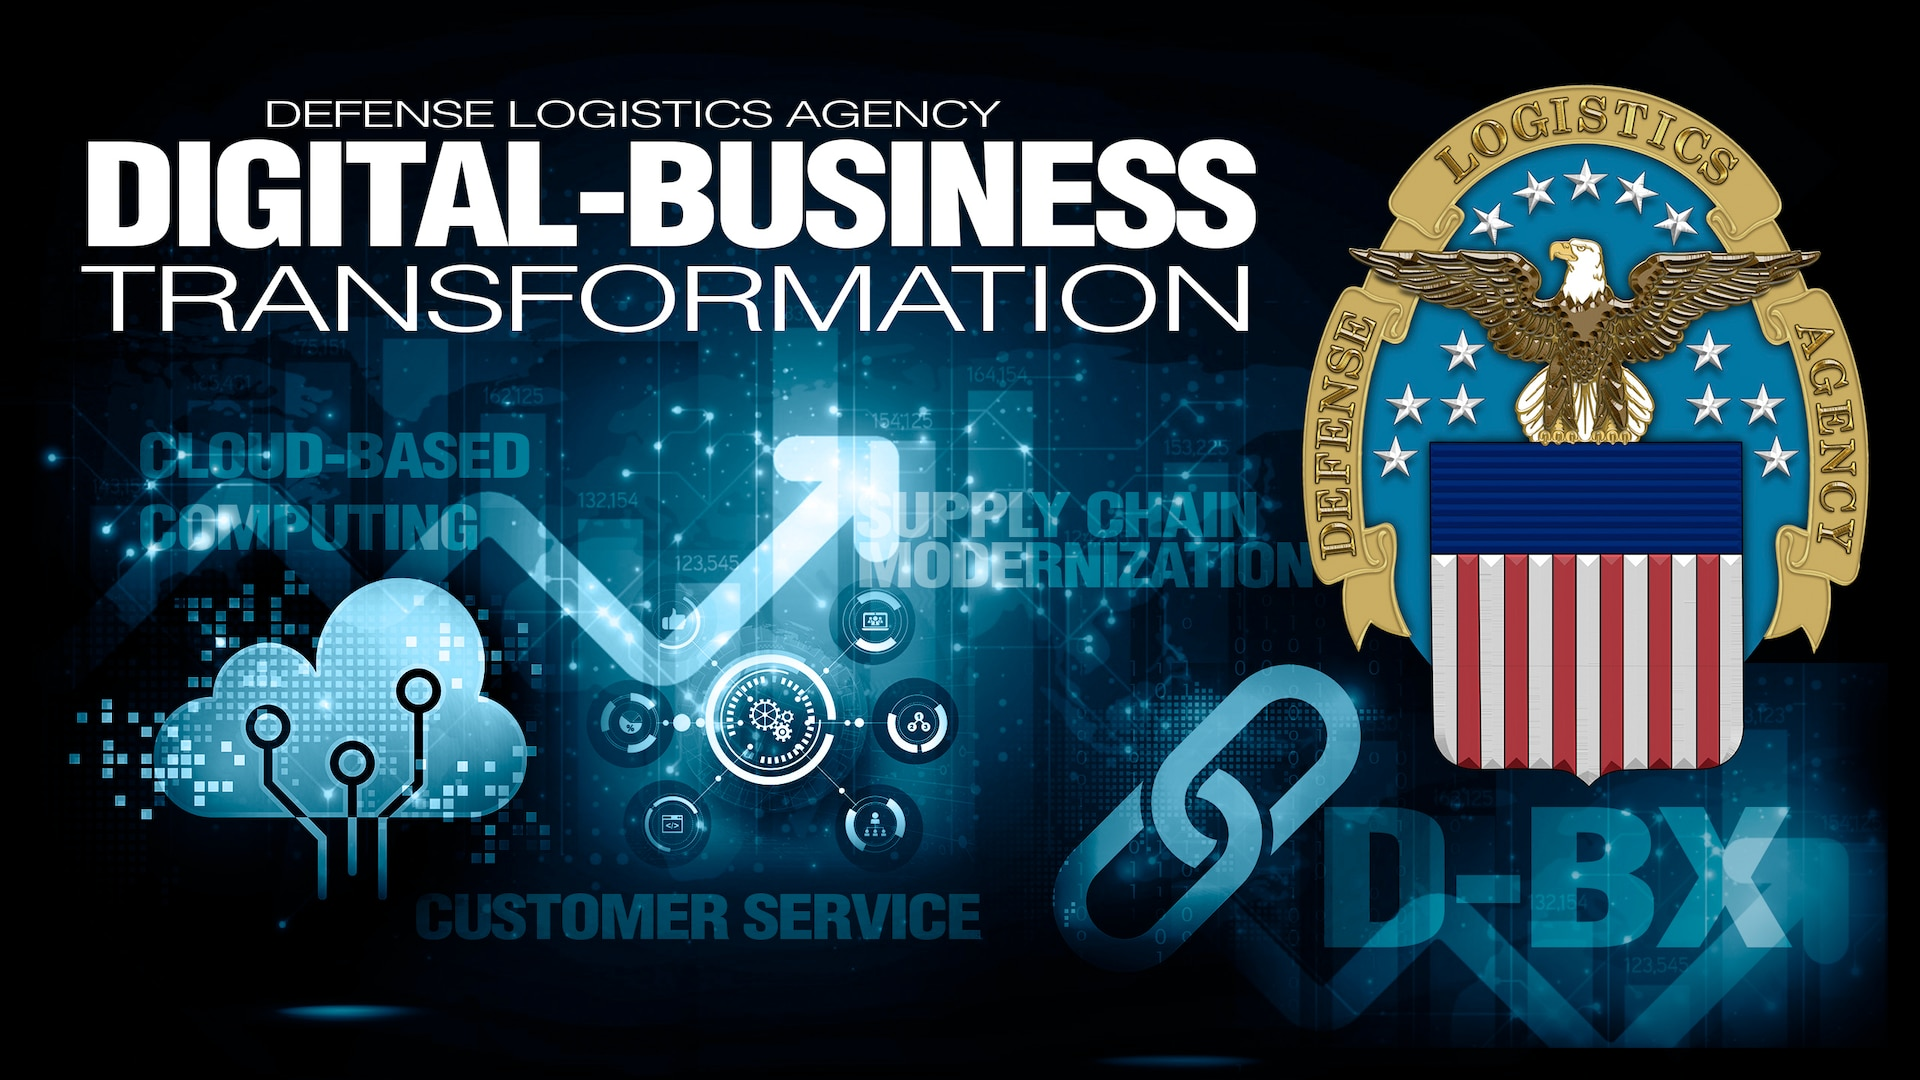 Text saying Digital-Business Transformation with the DLA emblem on a technology-related background